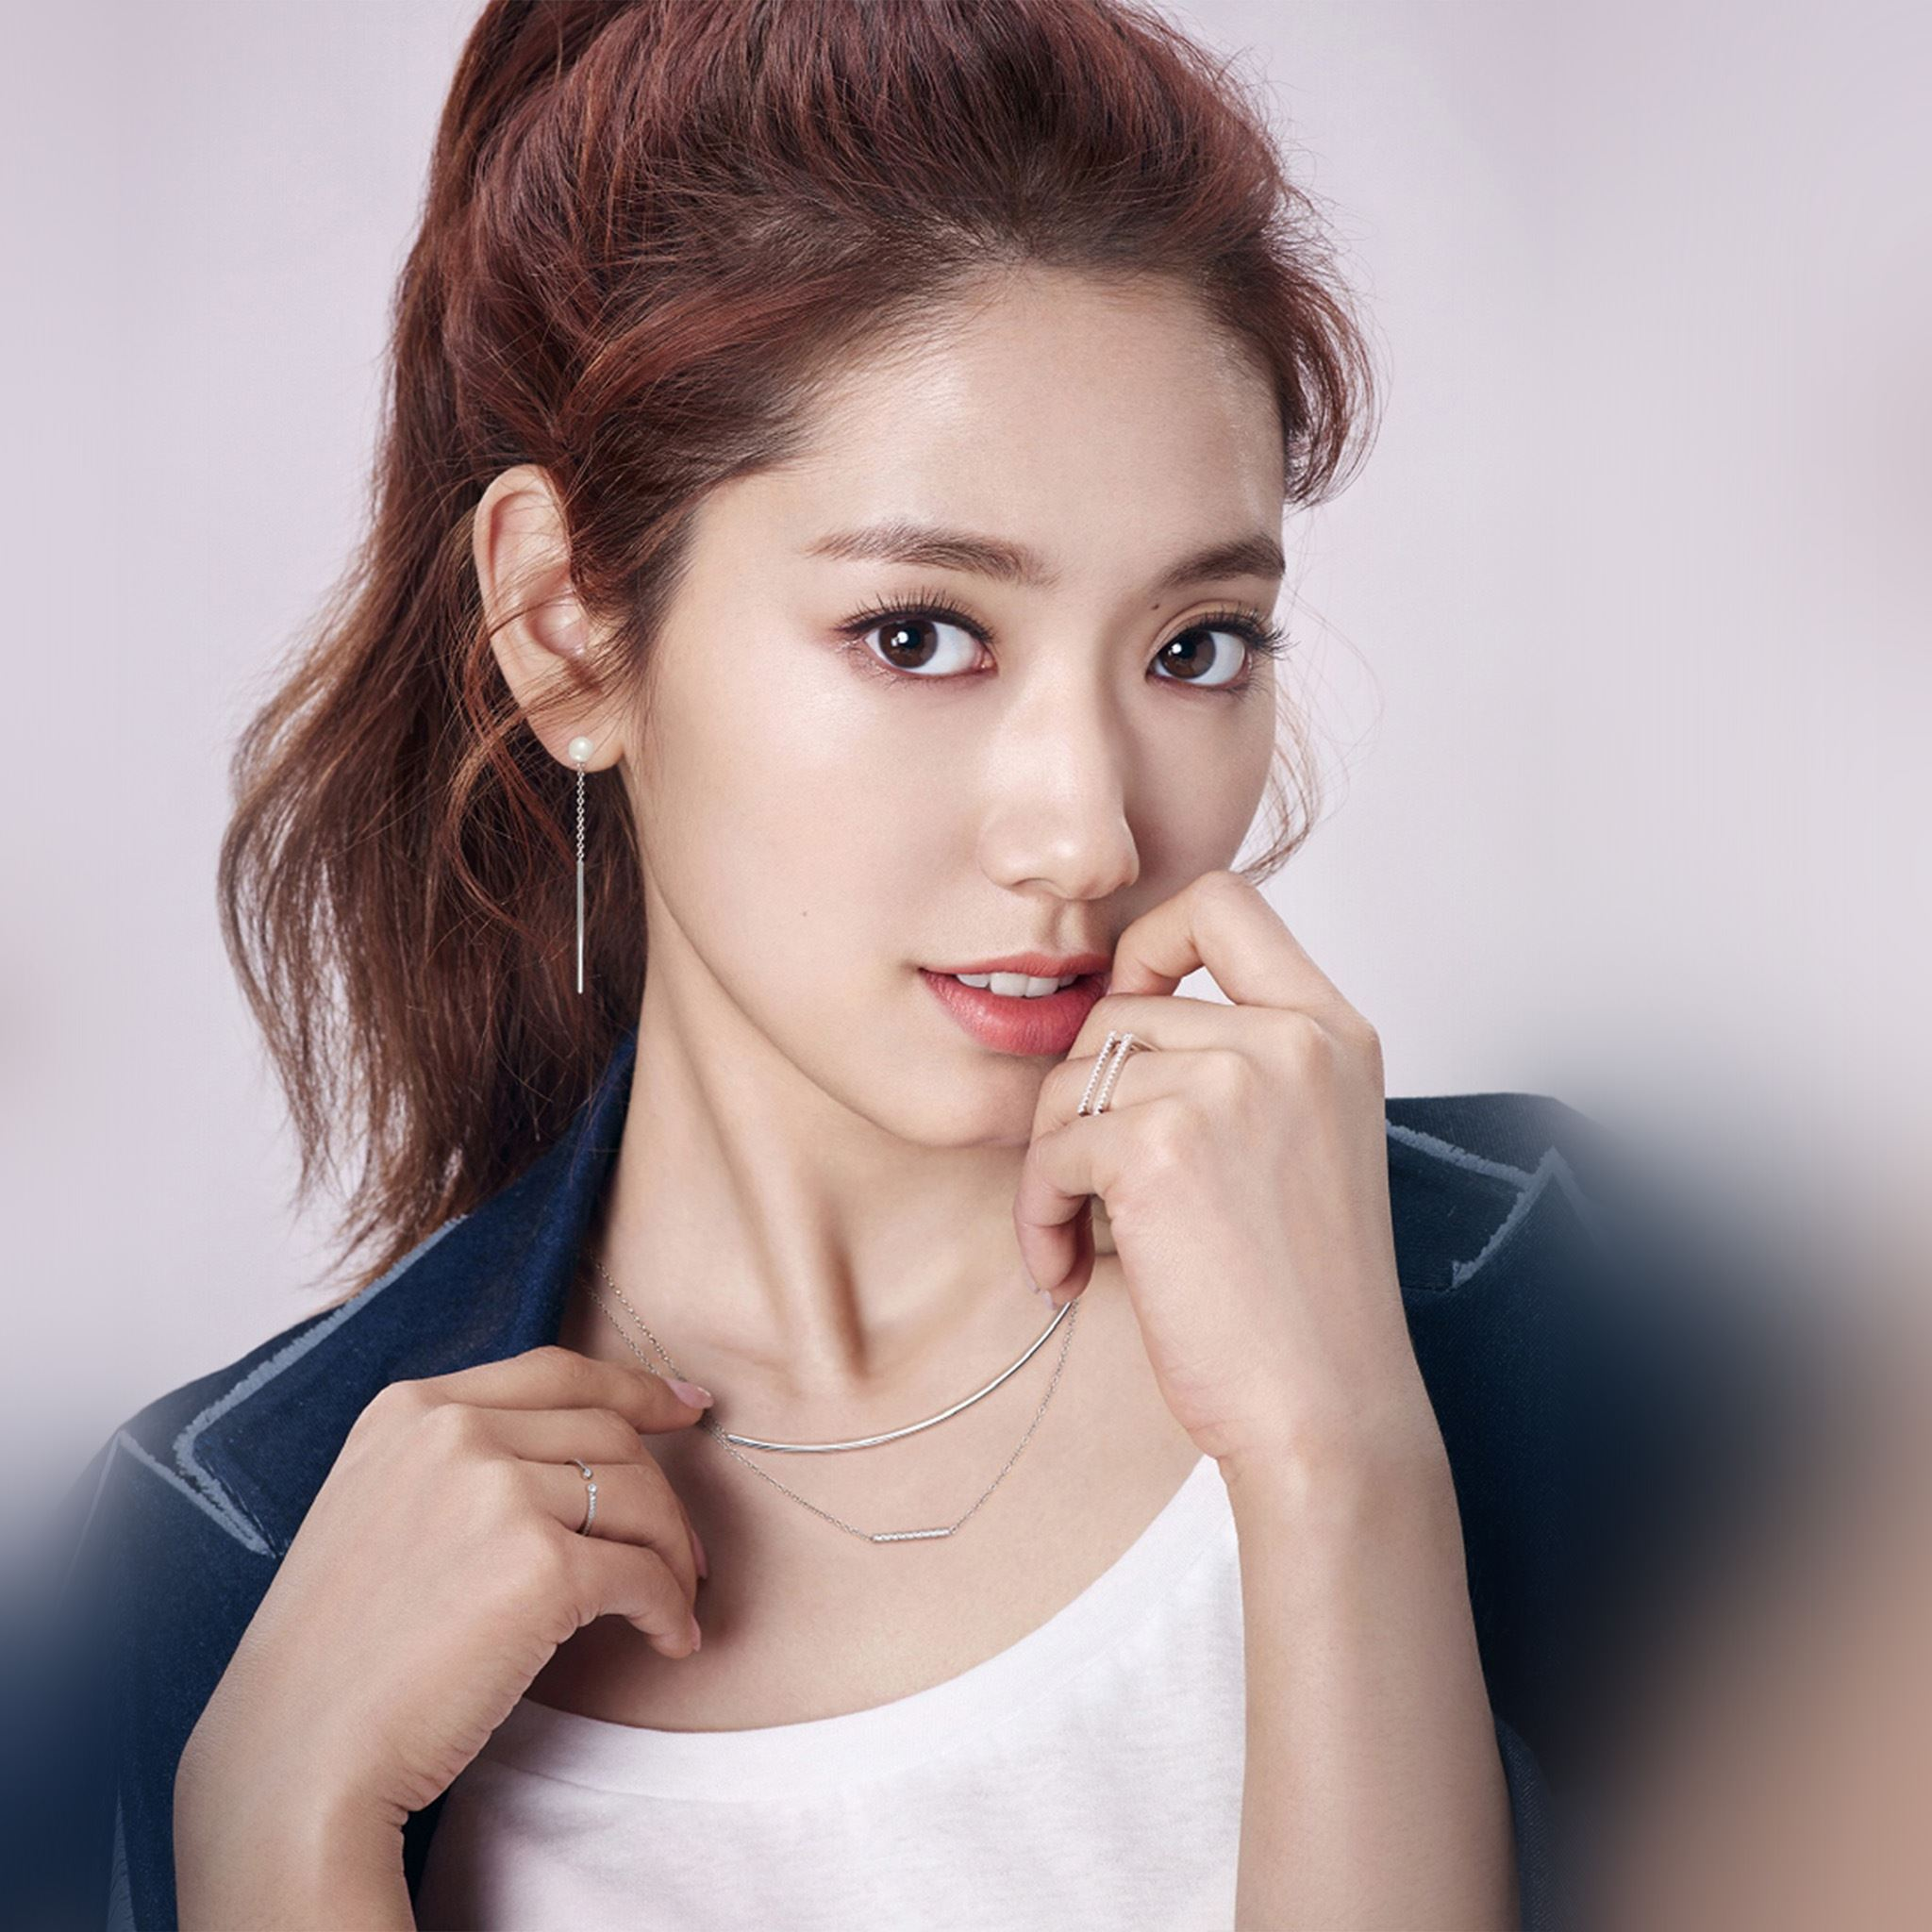 Park Shinhye Kpop Artist Film Asian iPad Air wallpaper